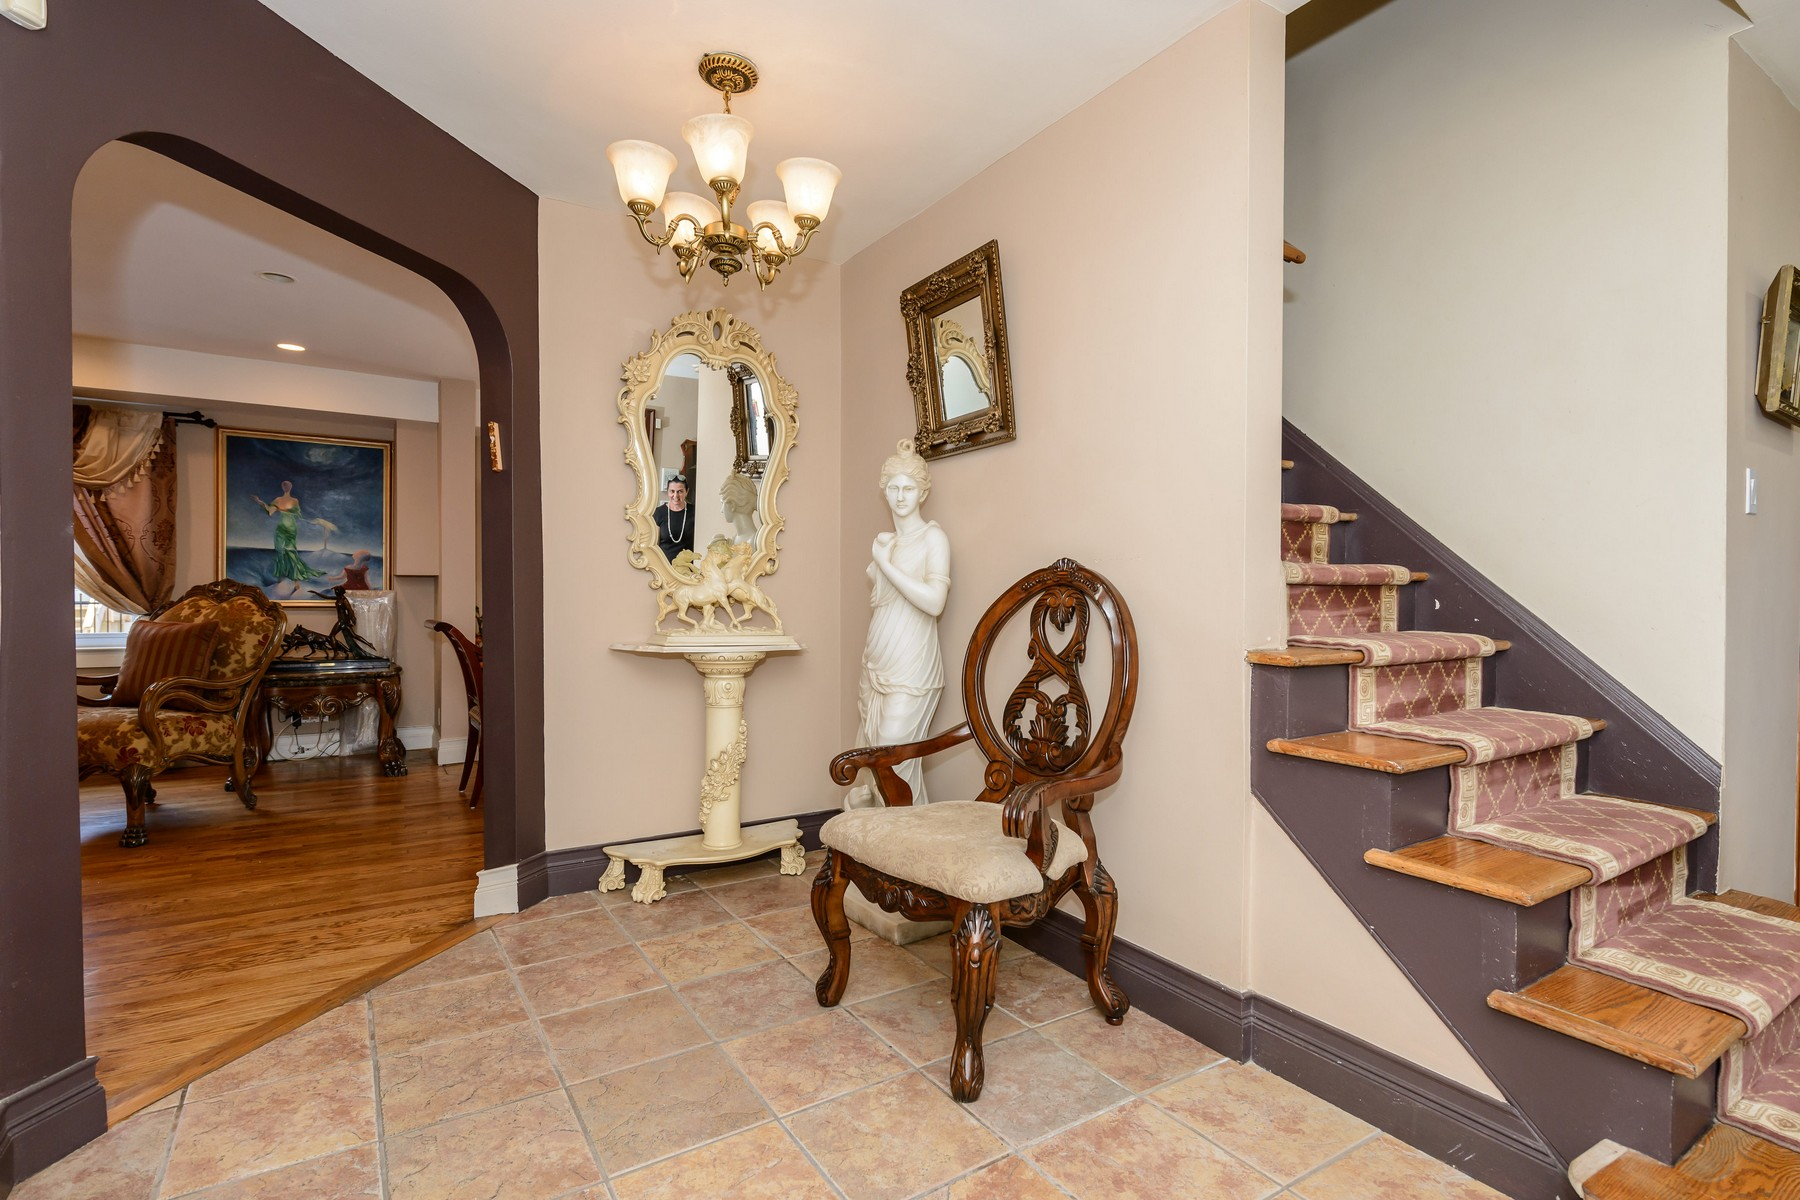 Single Family Home for Sale at Exp Cape 213-10 86th Ave Queens Village, New York, 11427 United States